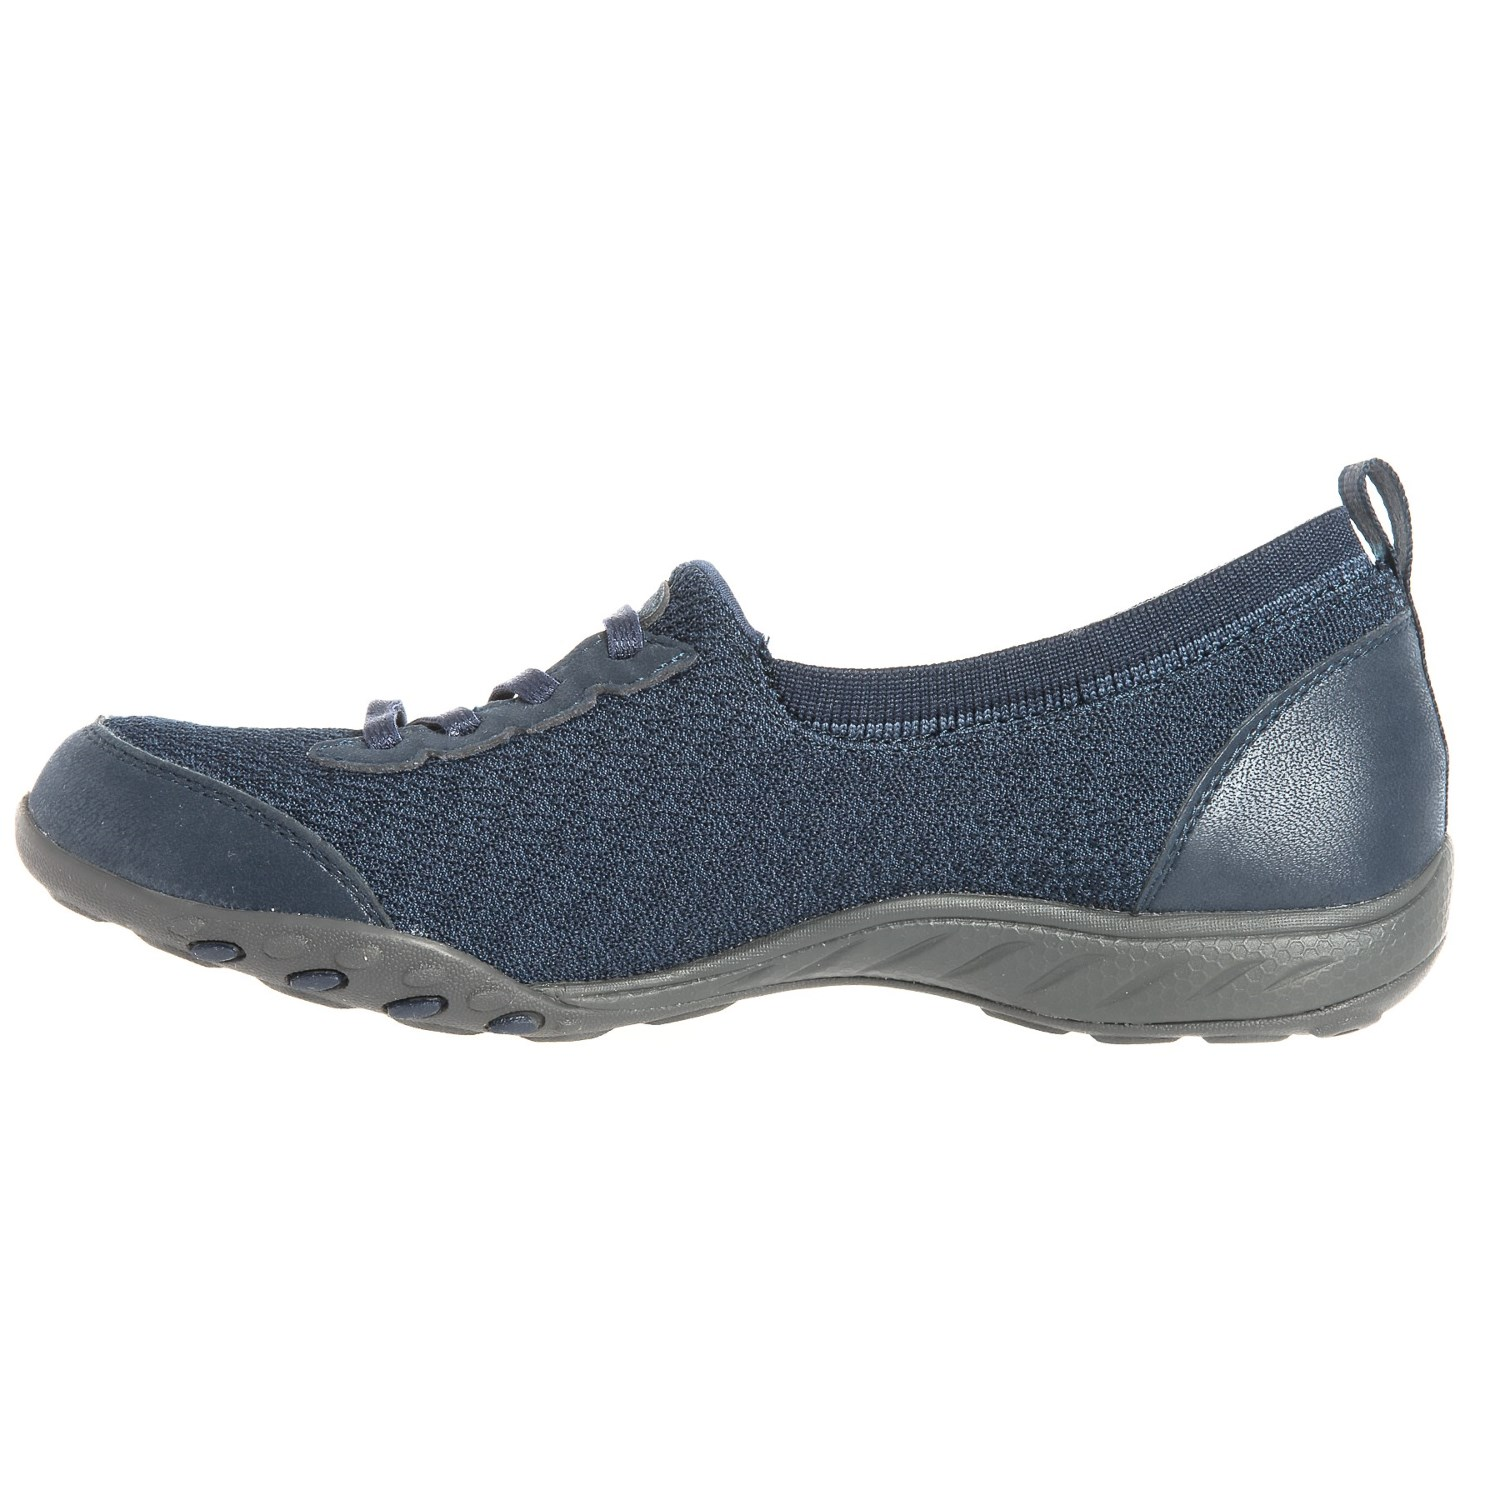 3b0da46a9231 Skechers Breathe Easy I m Dreaming Shoes (For Women) - Save 30%